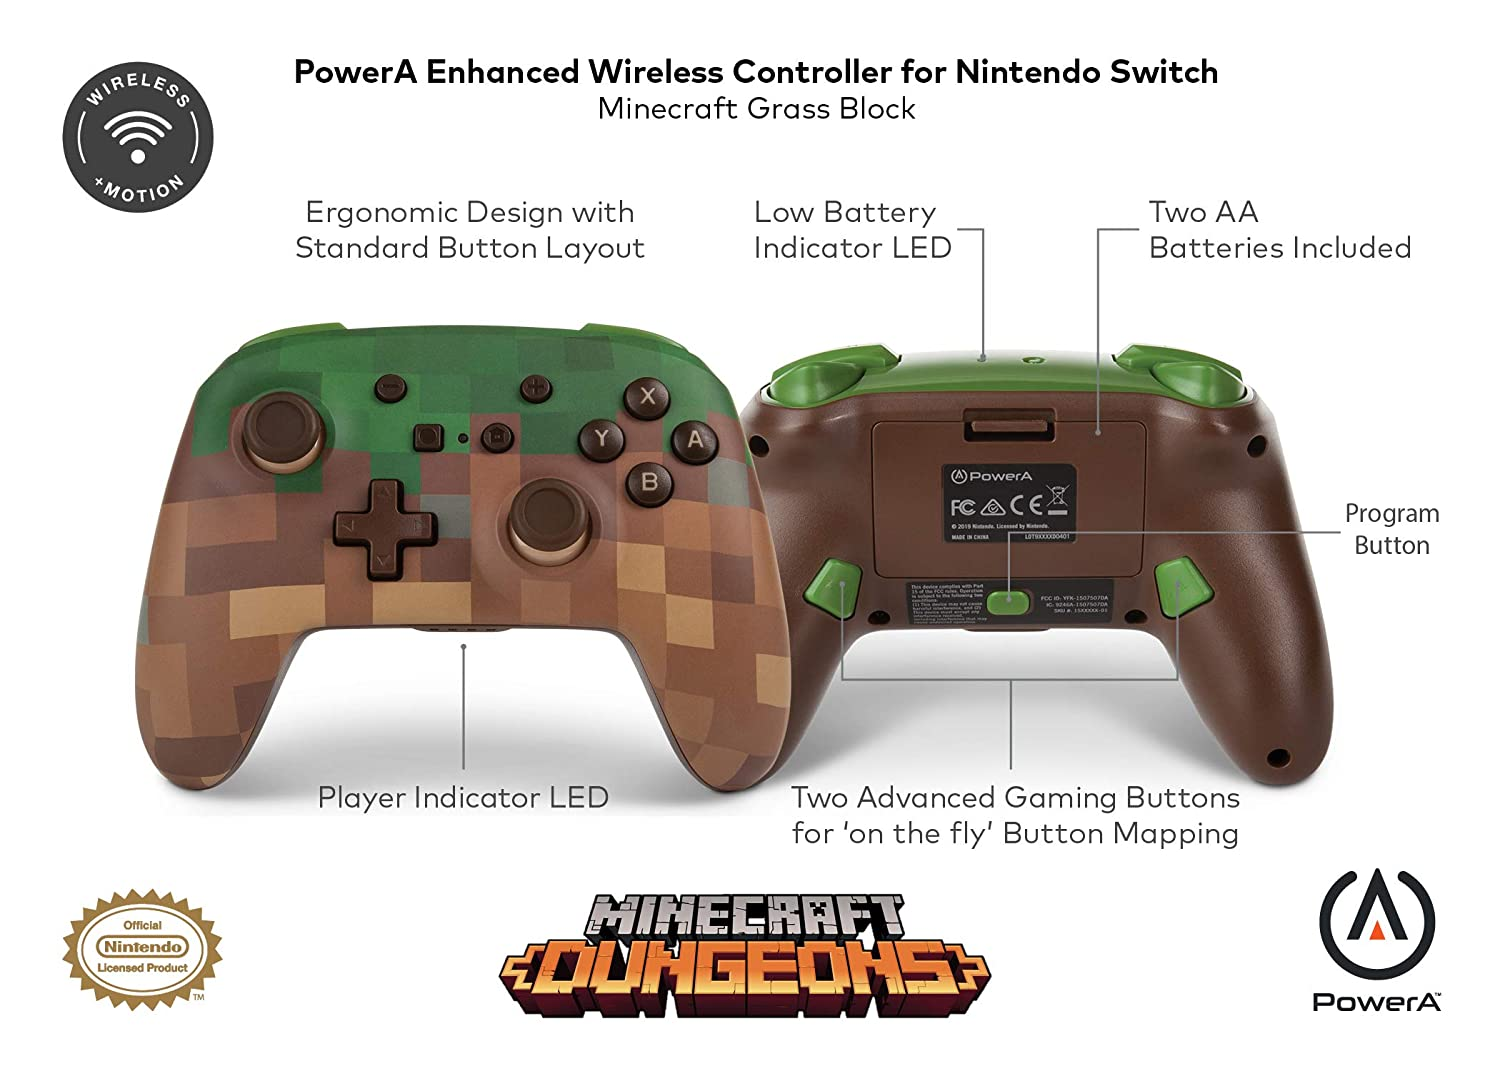 PowerA to release new Minecraft-themed Switch wireless controller